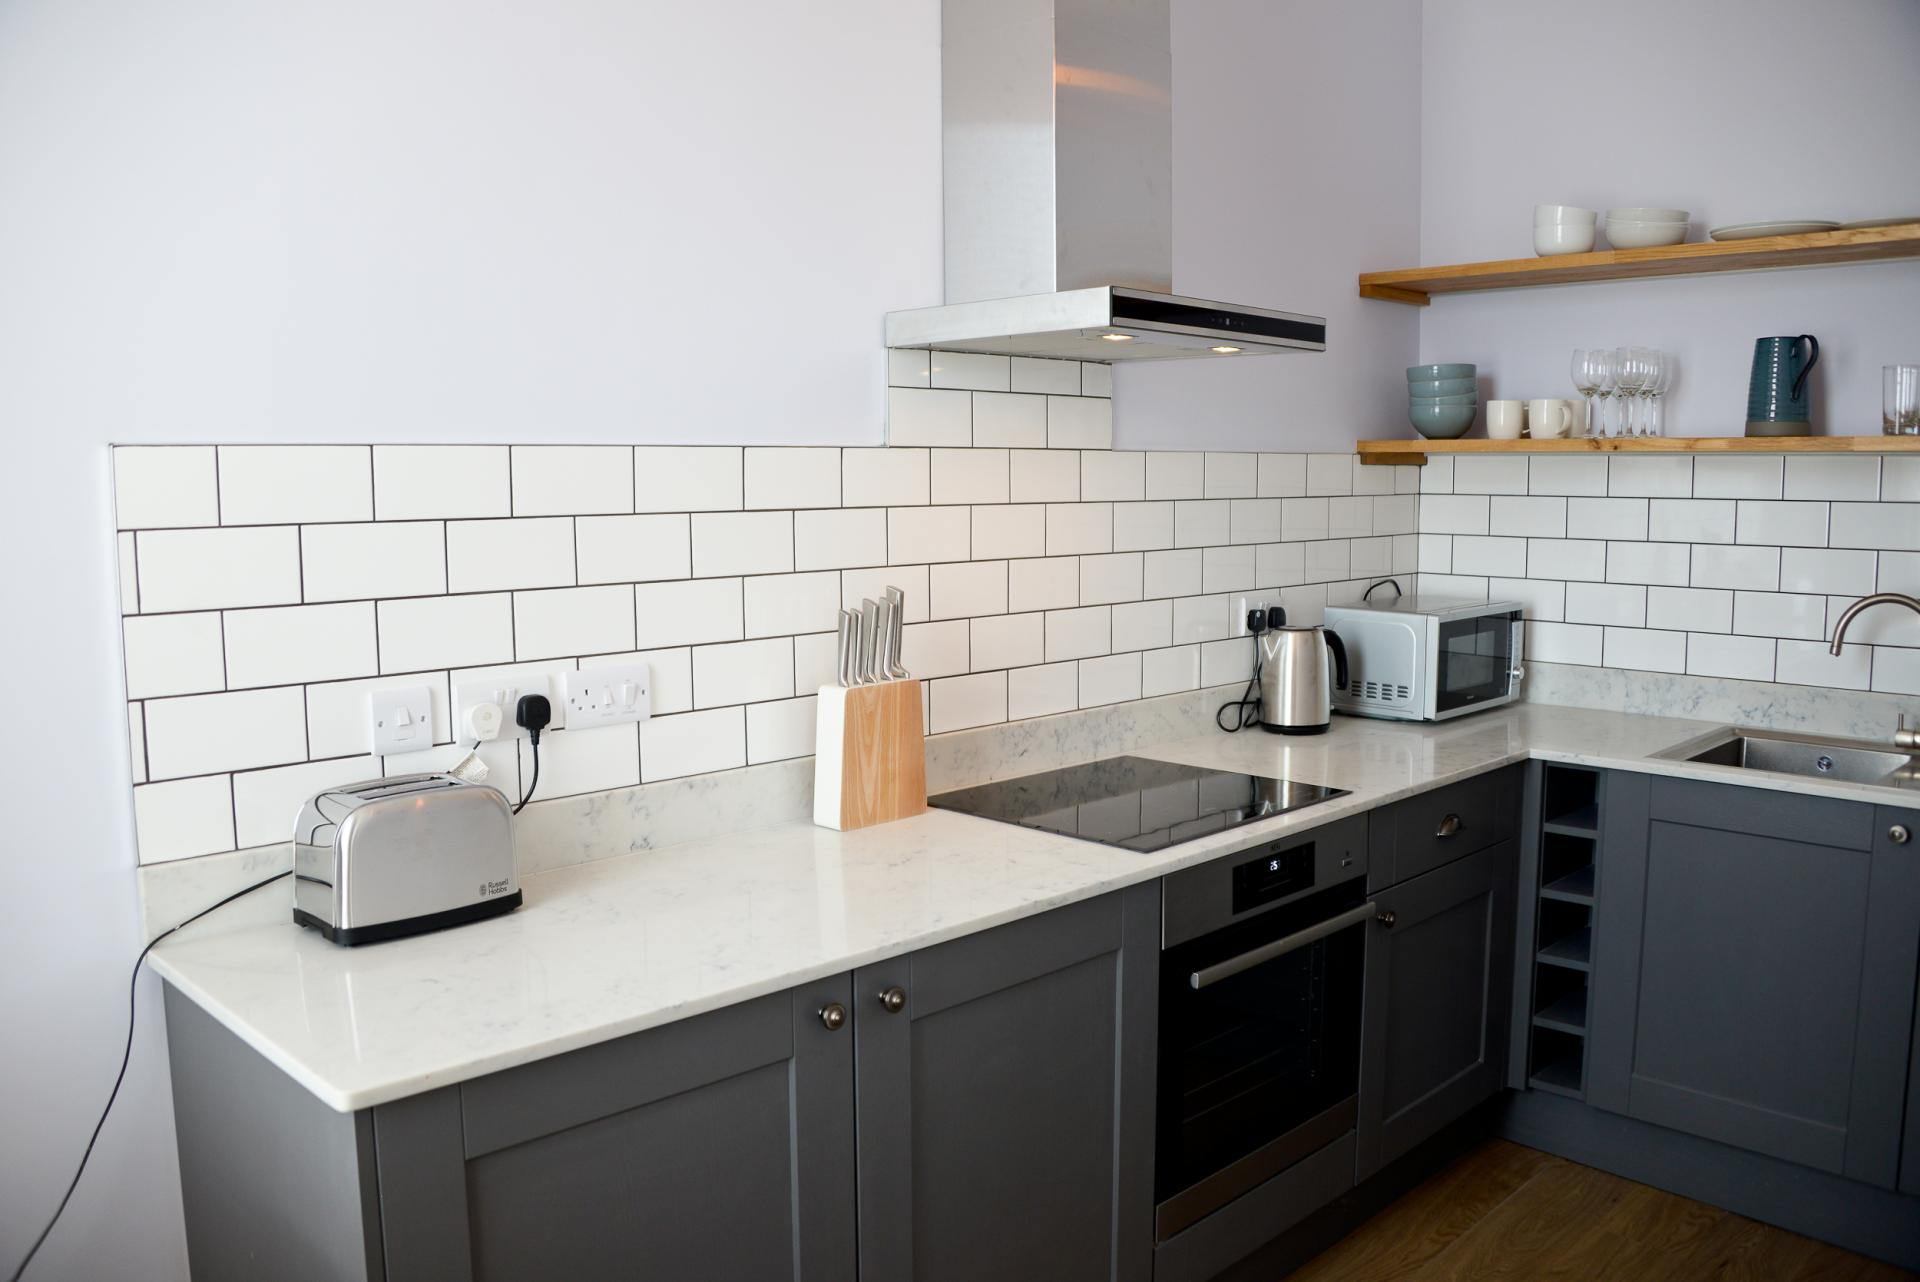 Kitchen facilities at Seaview Serviced Apartment